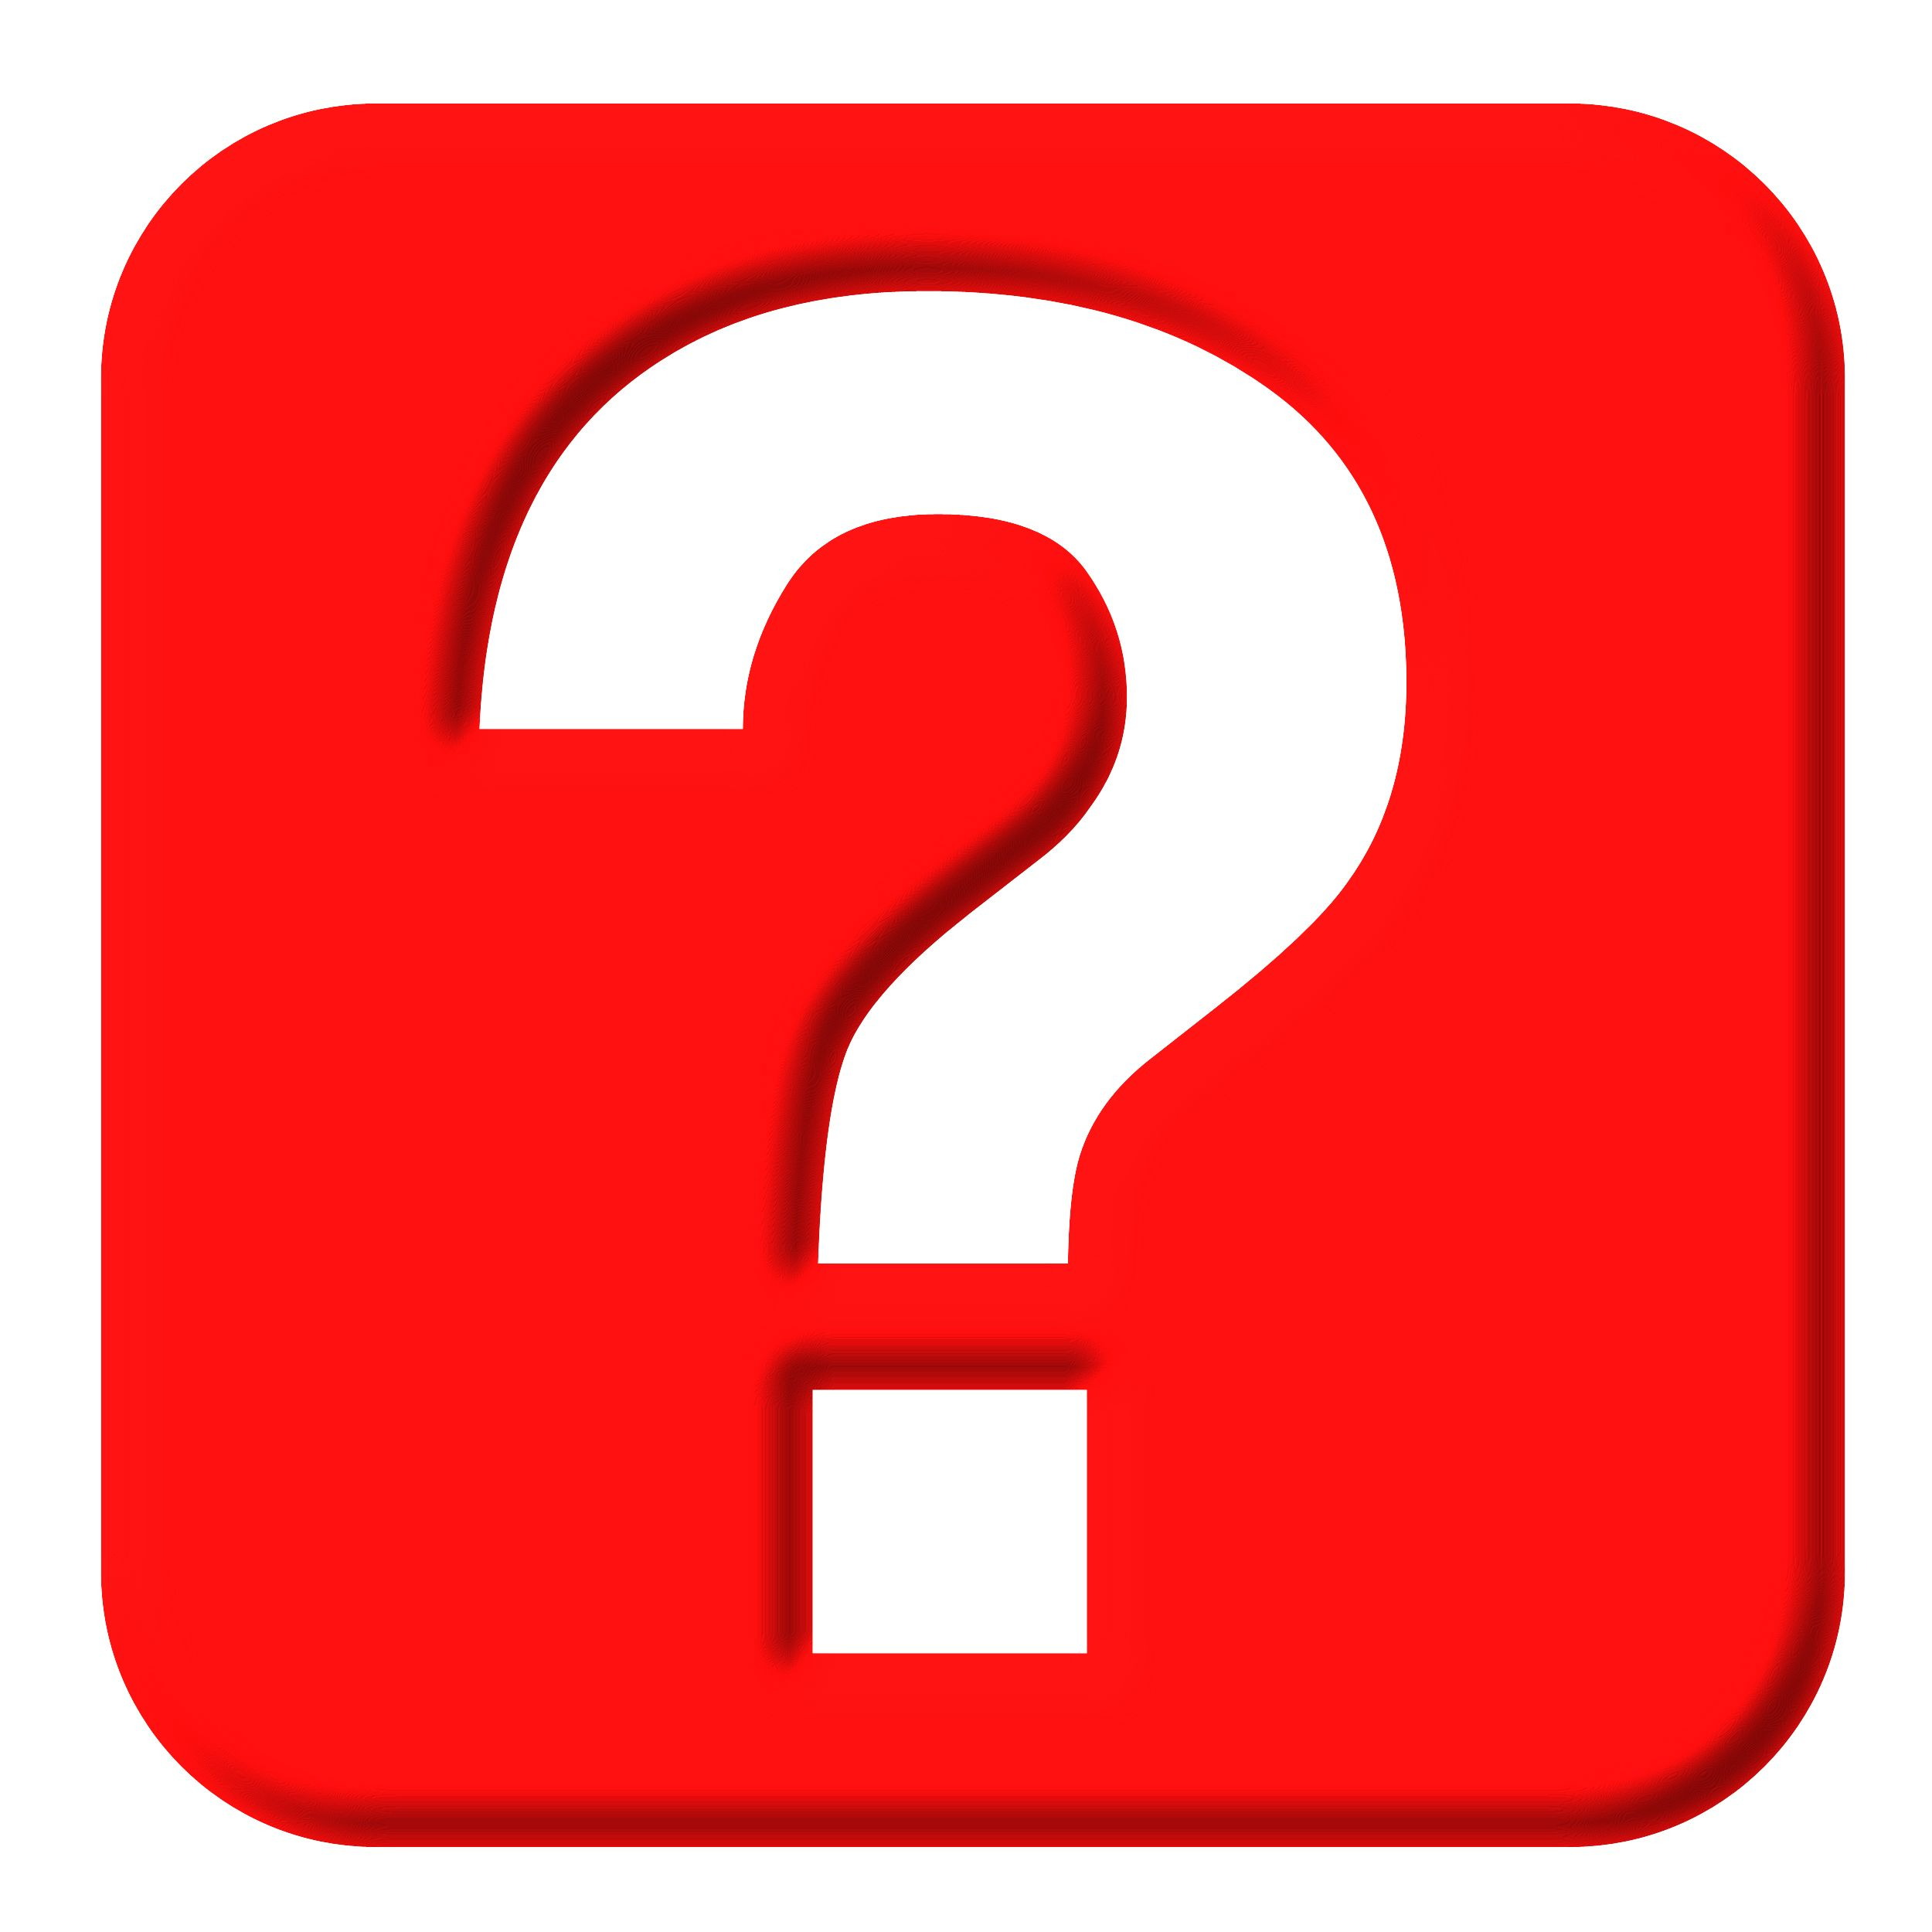 Big Red Question Mark - ClipArt Best